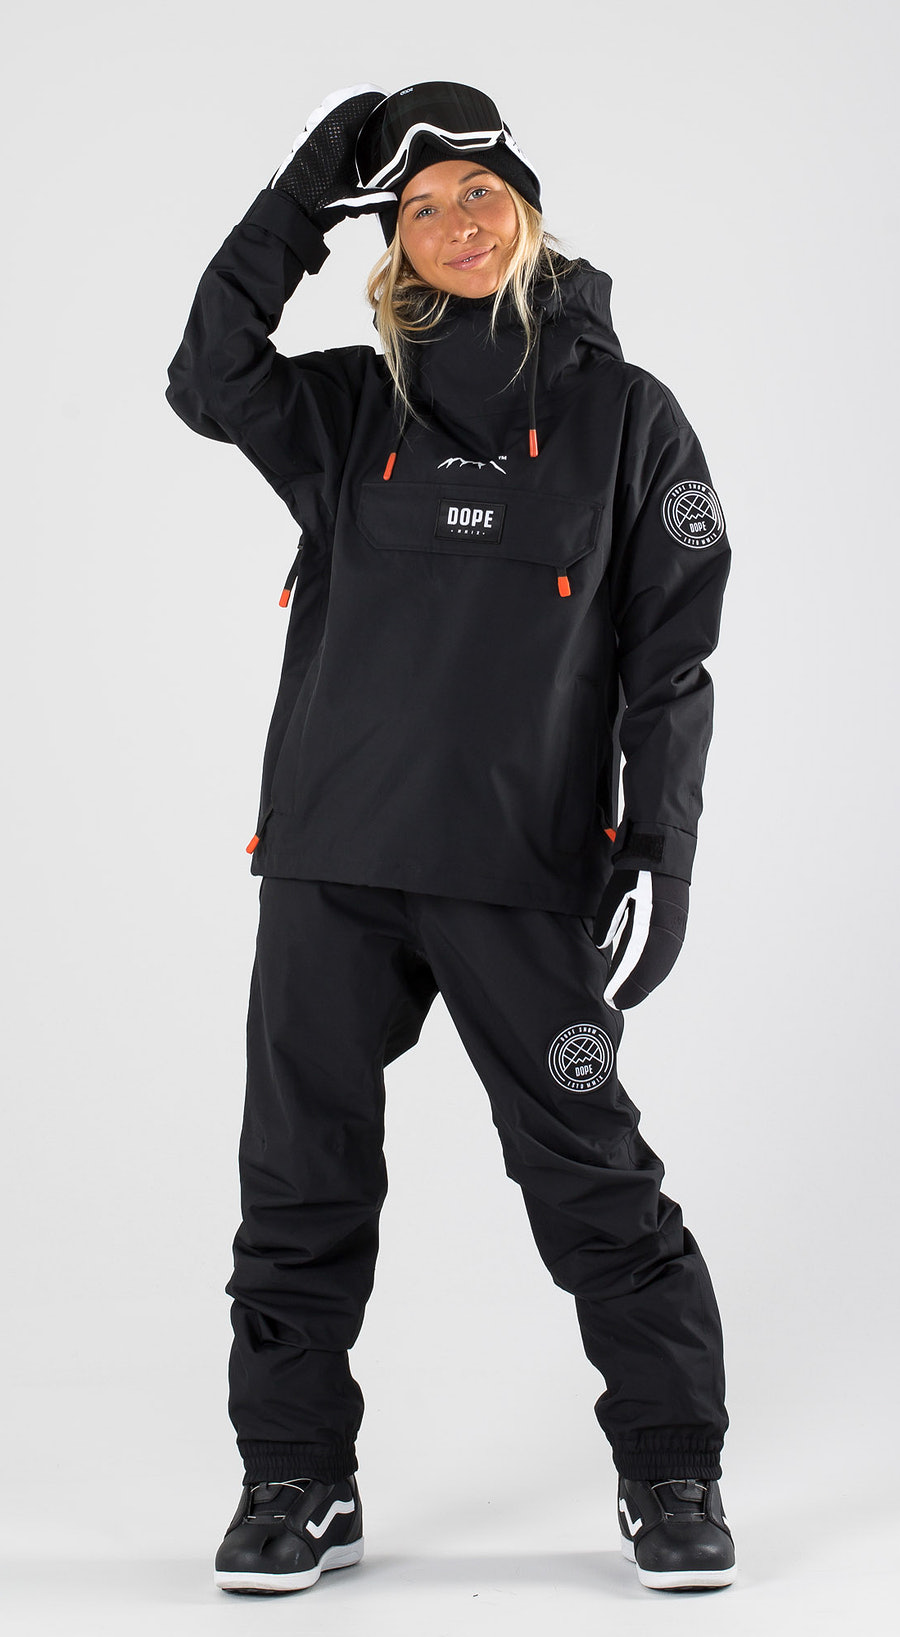 Dope Blizzard W Black Snowboard clothing Multi